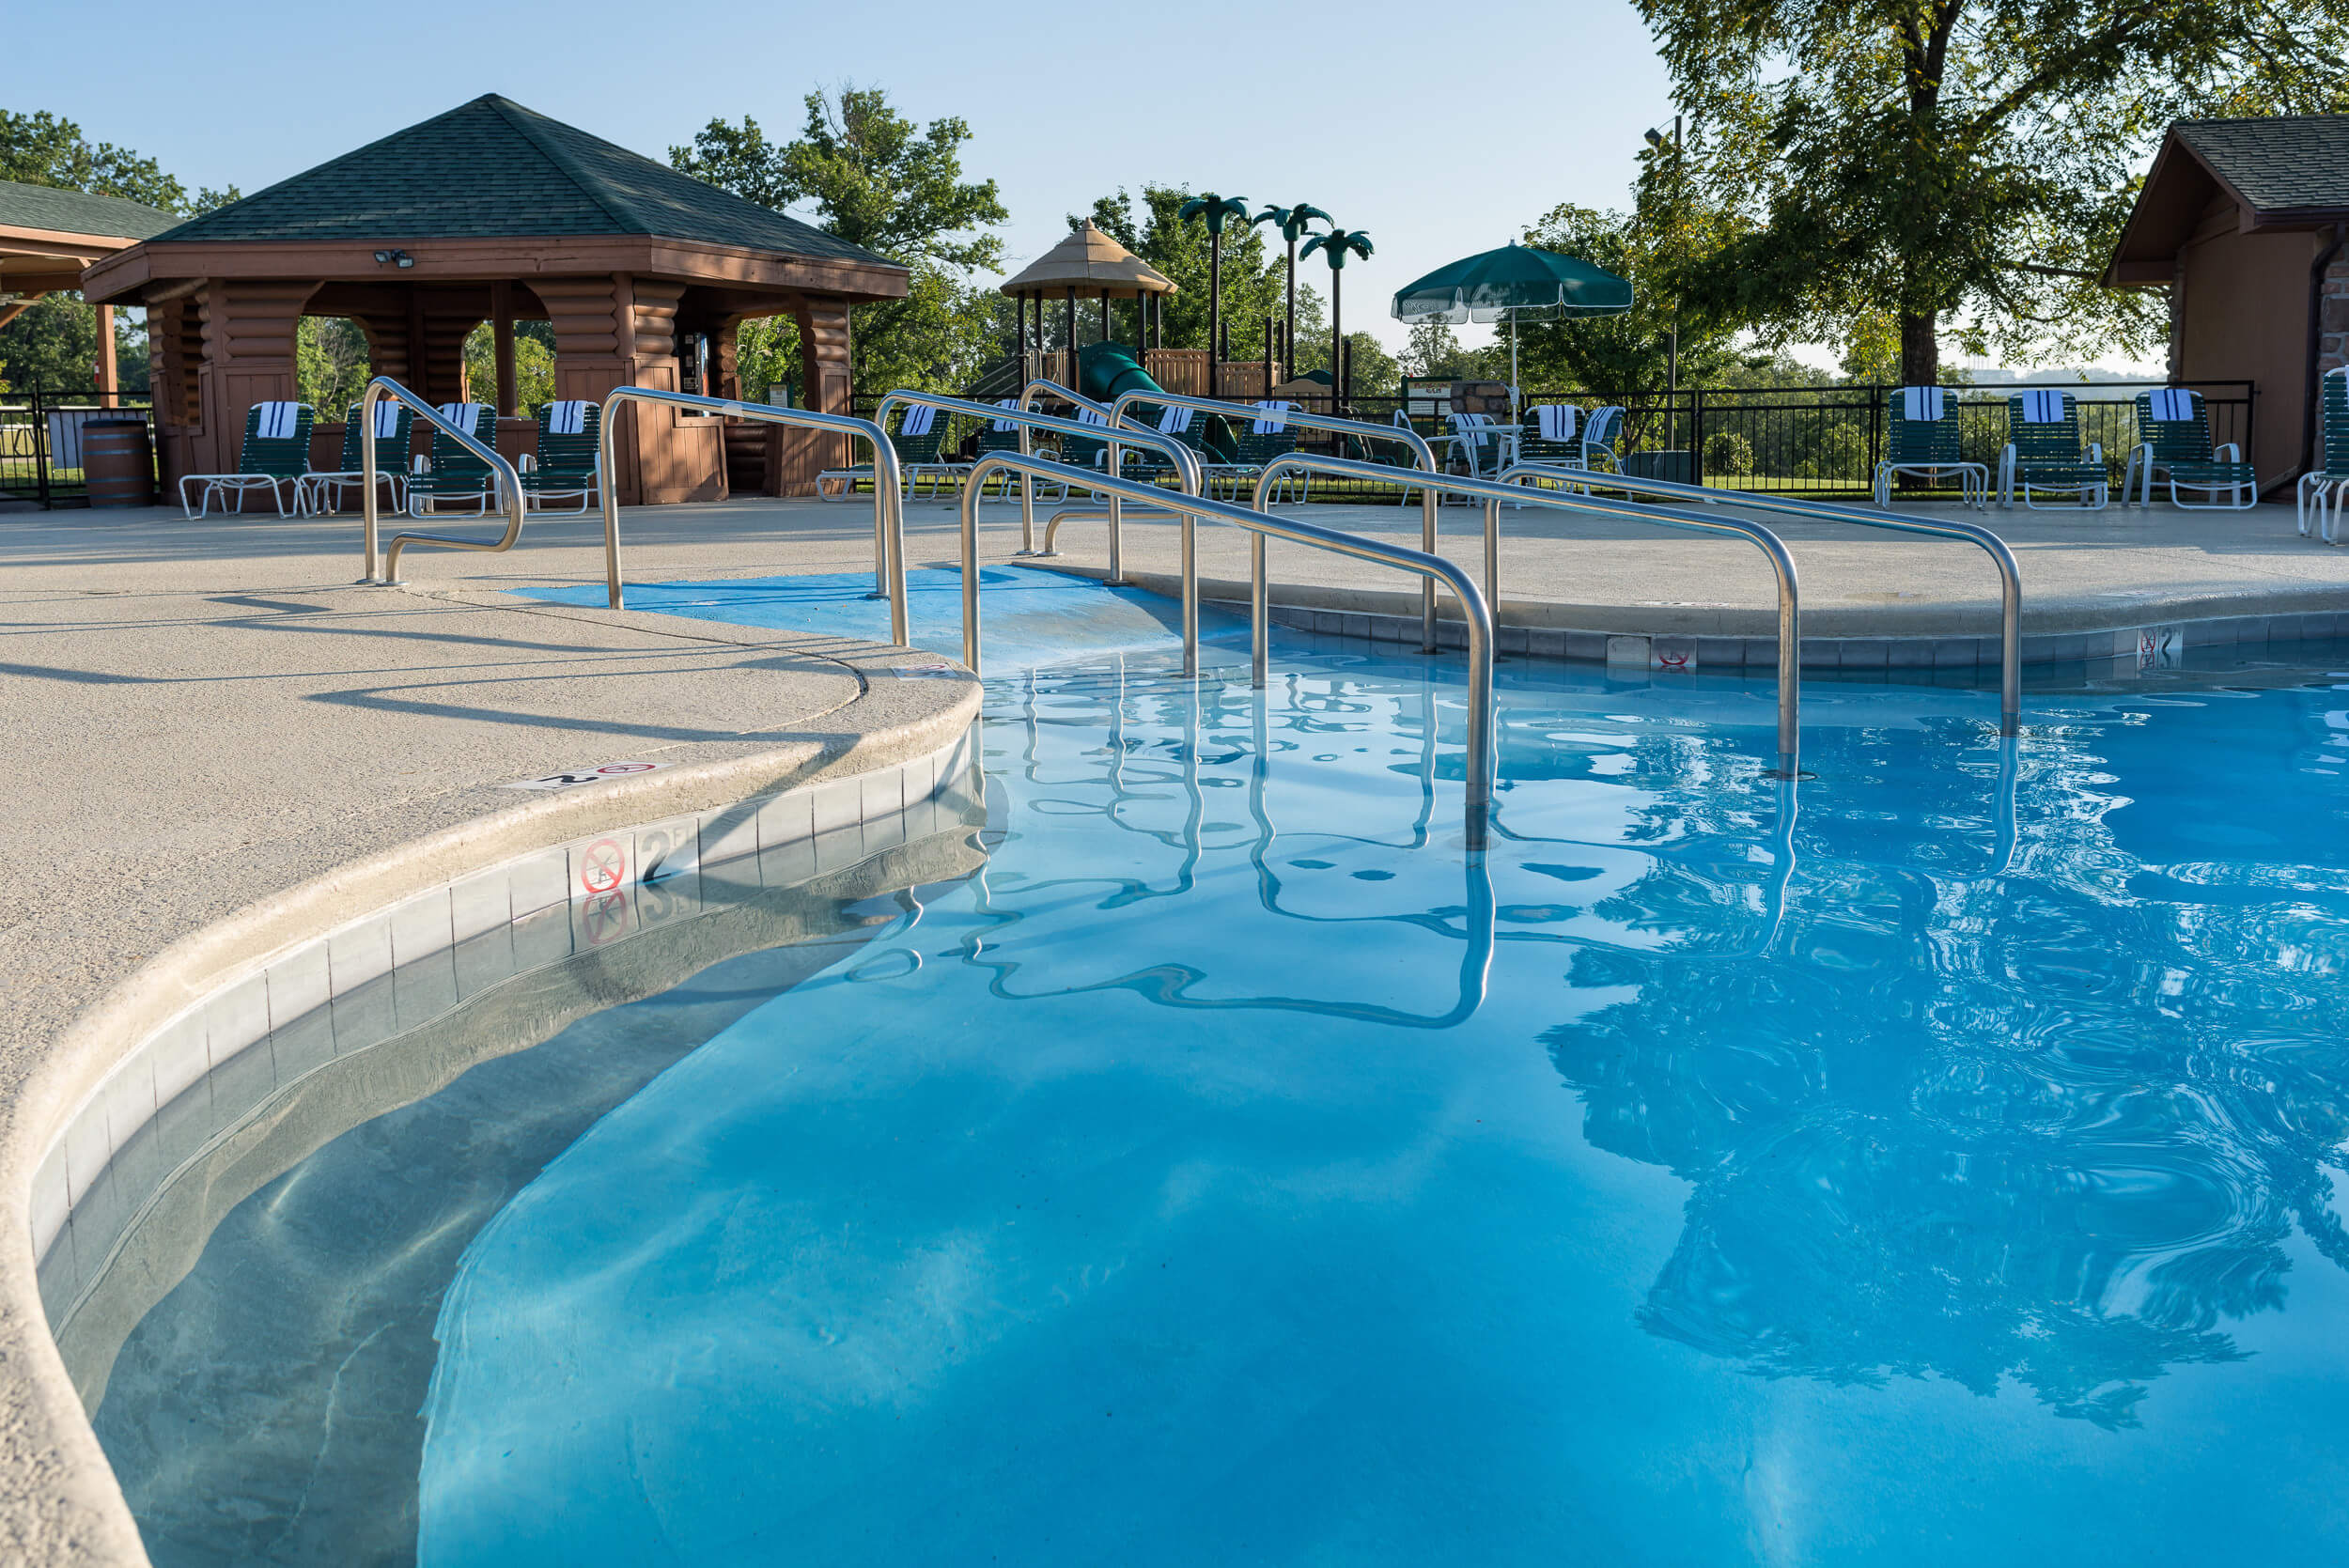 Outdoor pool surrounded by lounge chairs | Westgate Branson Woods Resort